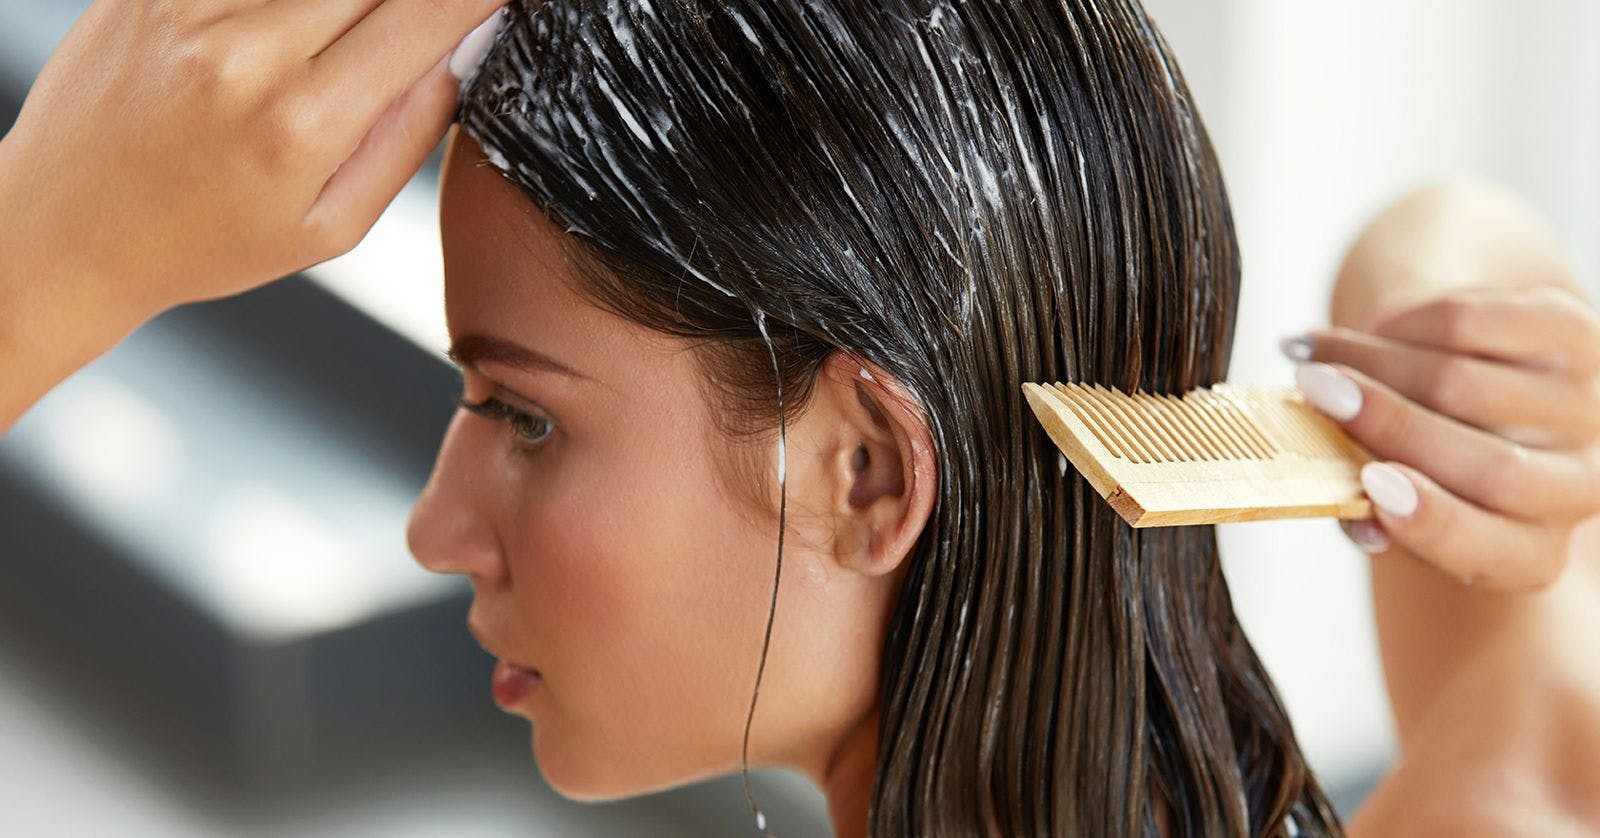 Why scalp care is the new skin care